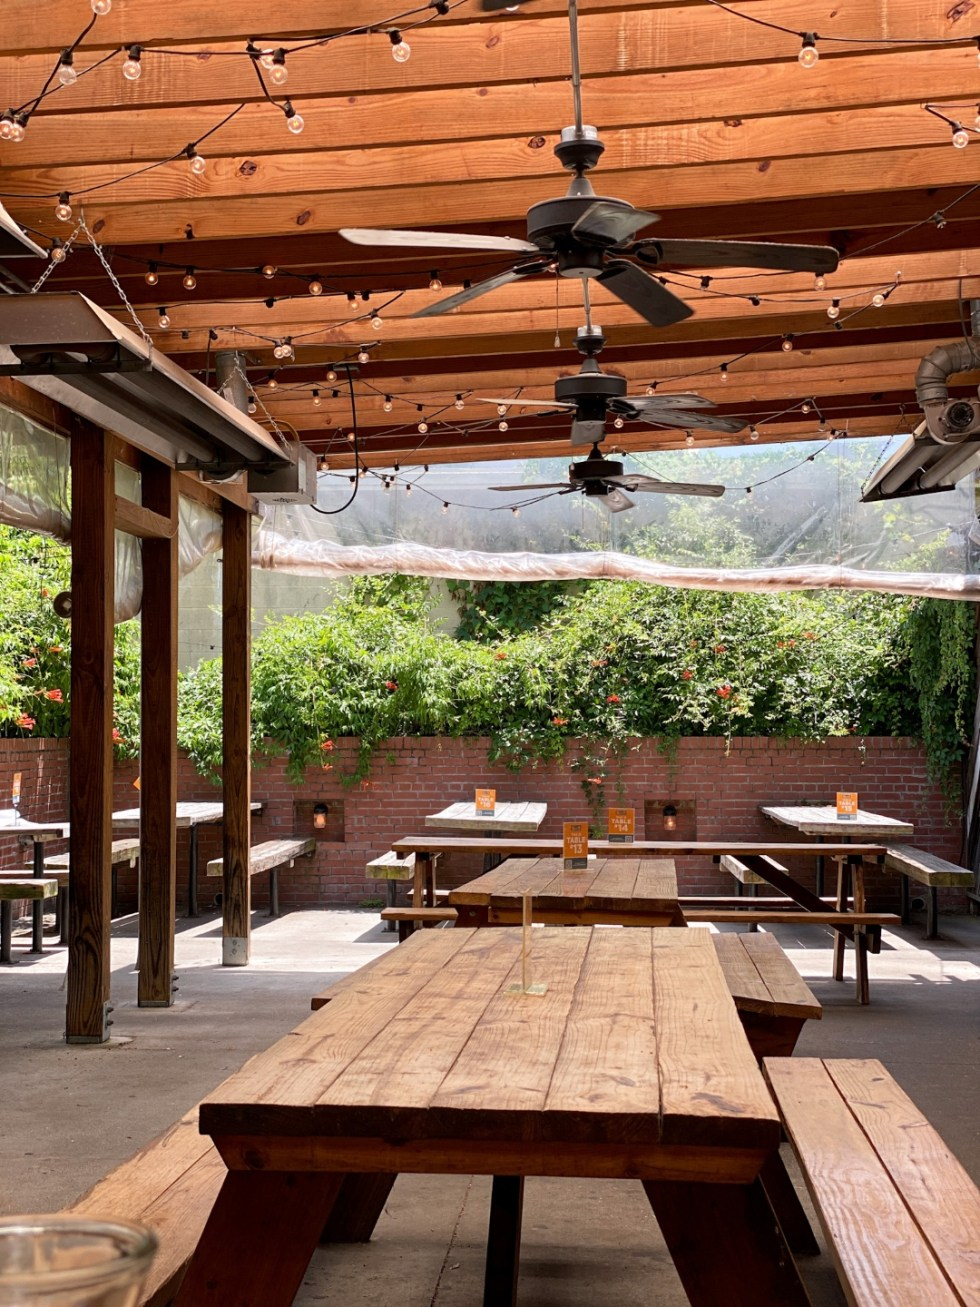 23 Awesome Things To Do in Durham - I'm Fixin' To - @imfixintoblog | Things to do in Durham by popular NC travel blog, I'm Fixin' To: image of a outdoor seating area with wooden picnic table, bistro lighting, and metal ceiling fans.